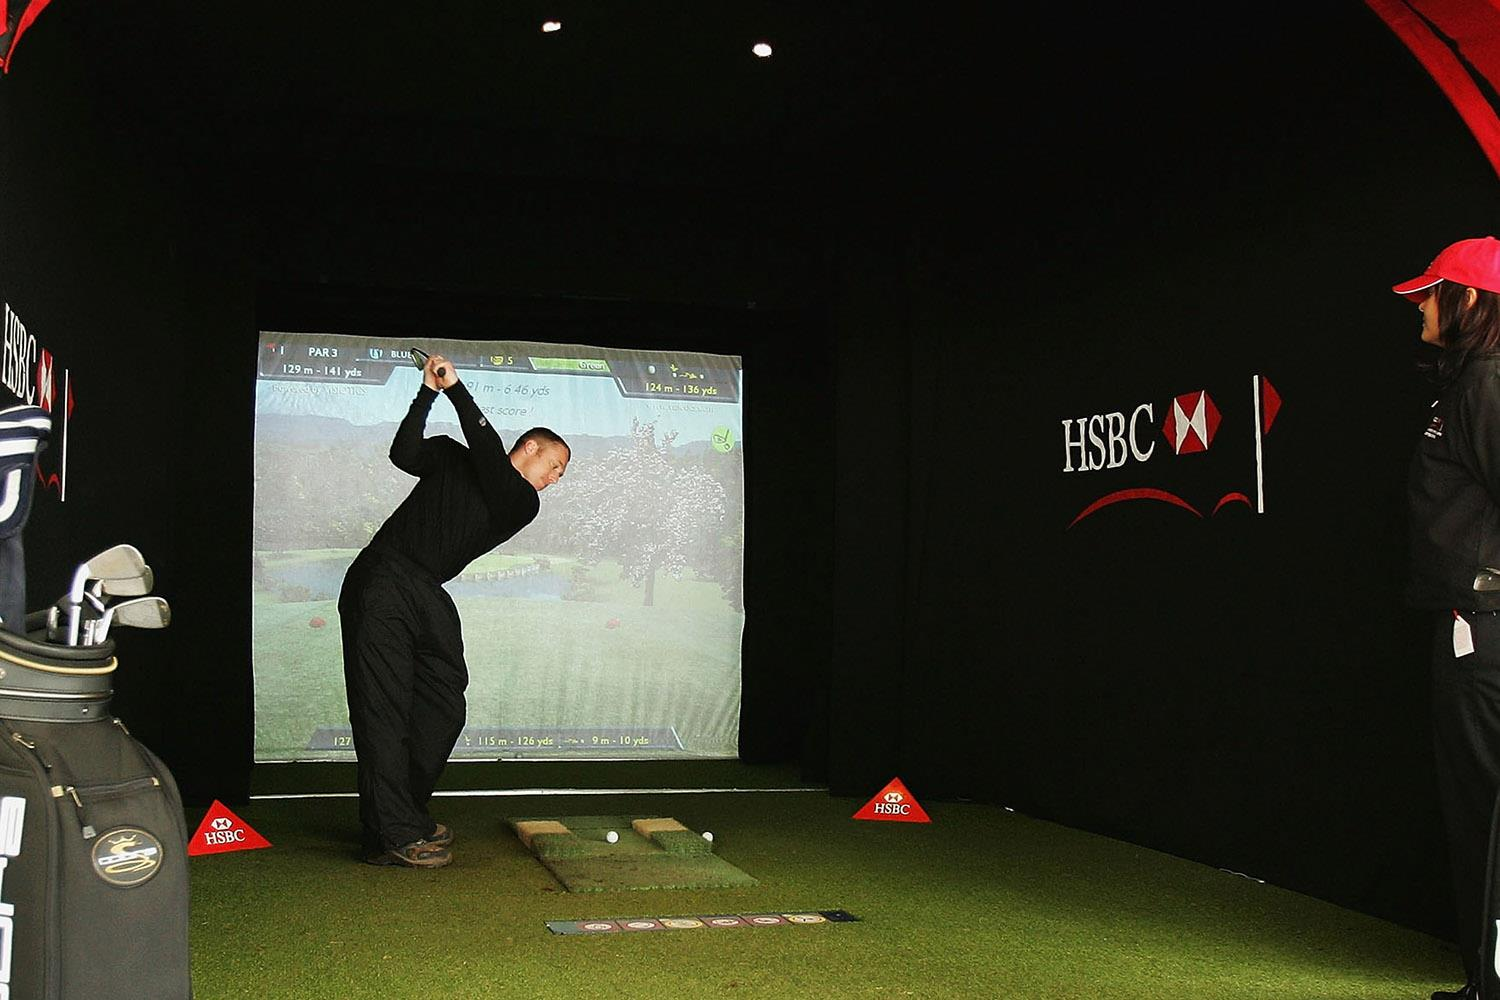 Have a go on a golf simulator